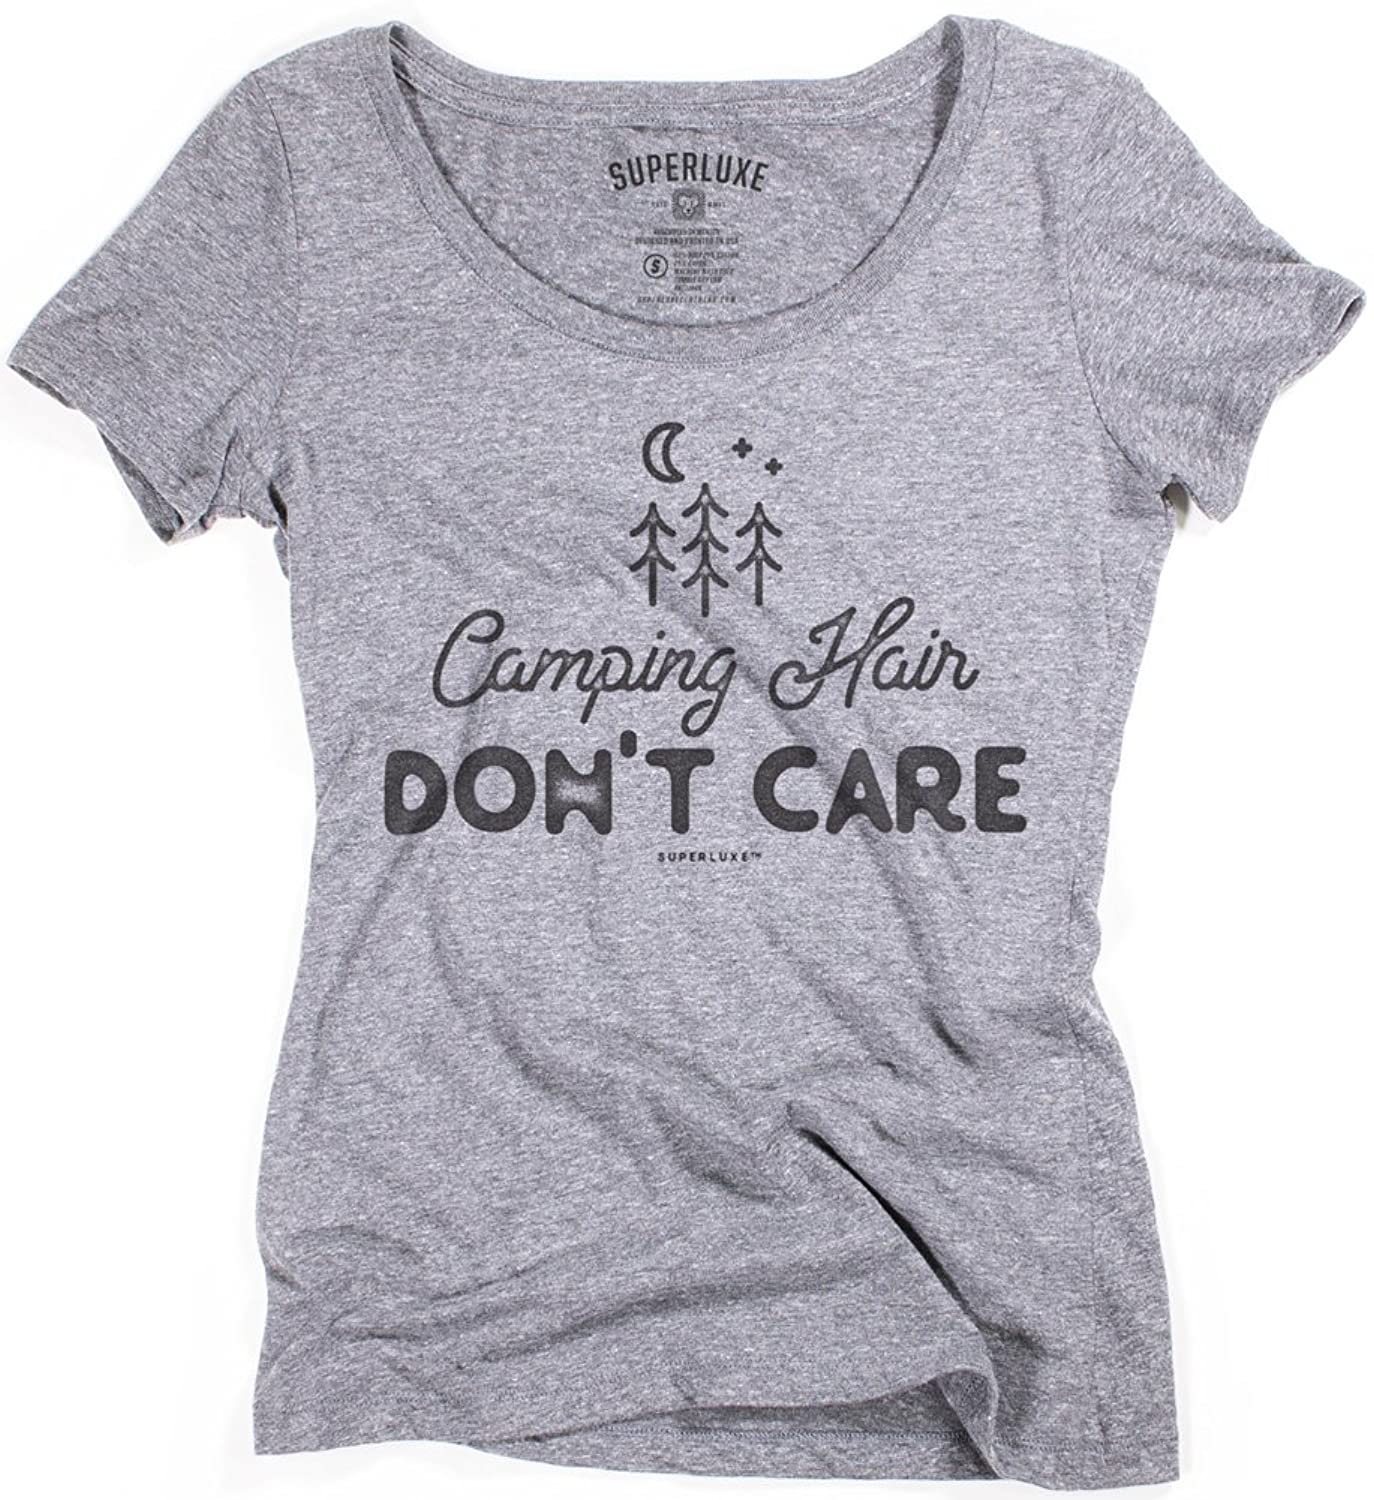 Superluxe@ Womens Camping Hair, Dont Care Tri-Blend Scoop Neck T-Shirt